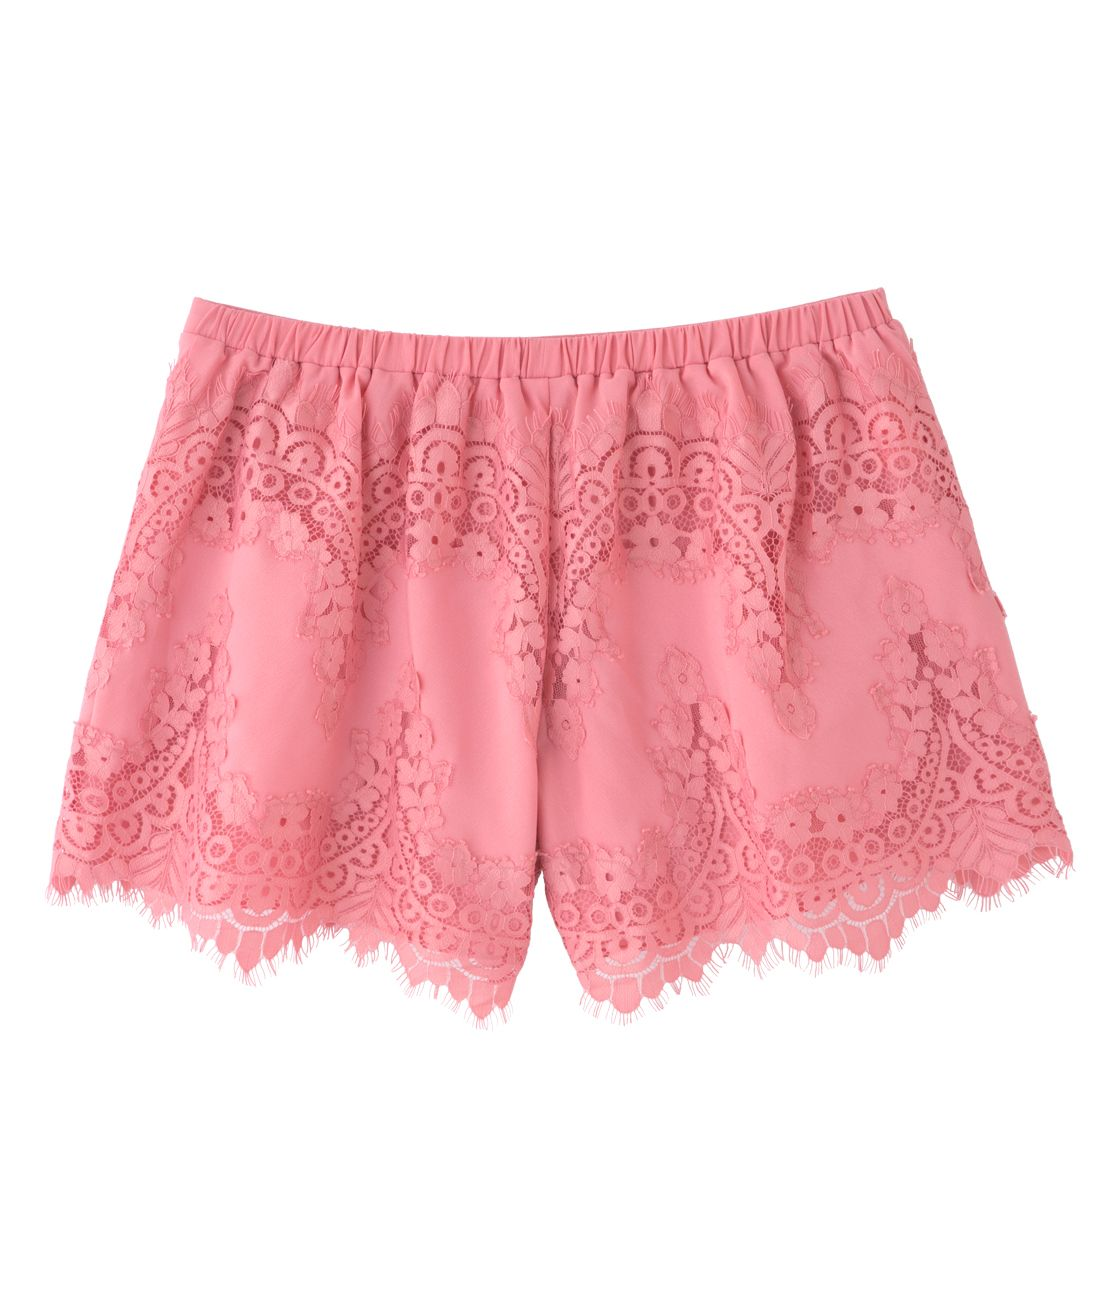 Flower amulet shorts